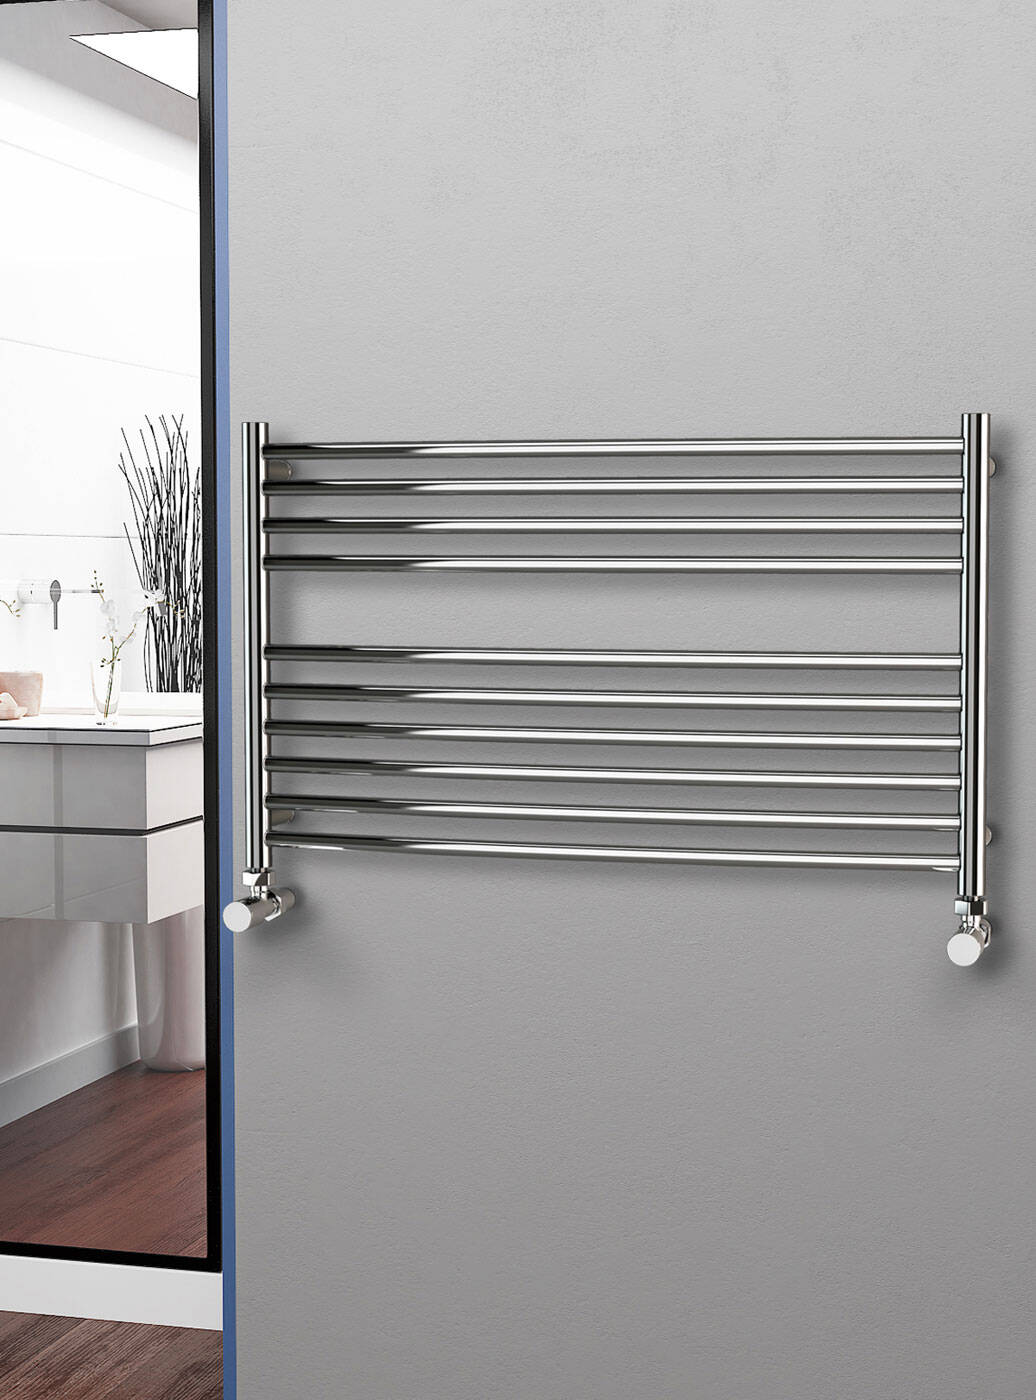 eastgate curved polished 304 stainless steel heated towel rail 600mm high x 1000mm wide electric only